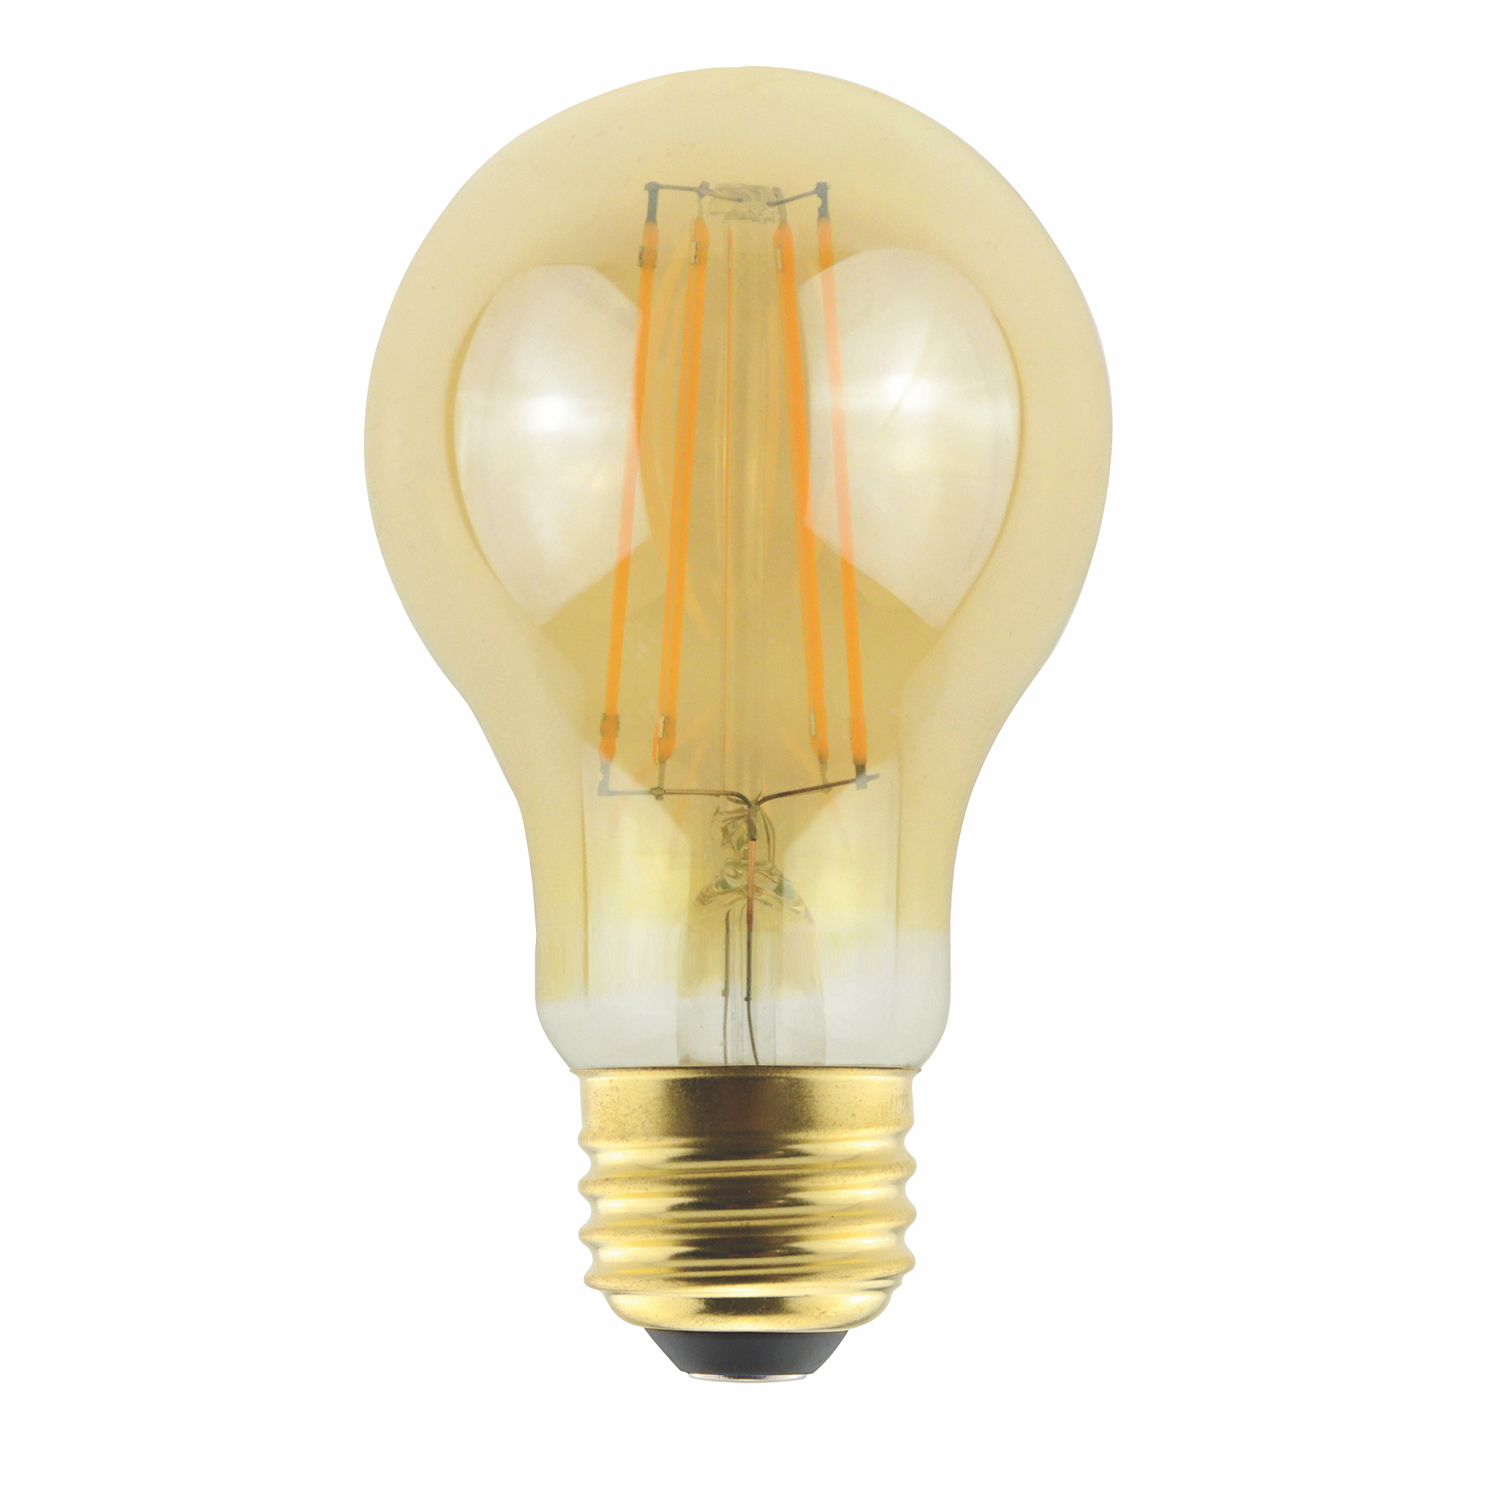 A19AMB5ANT/820/LED2 85038 A19 120V 5W 2000K E12 AMBER ProLED